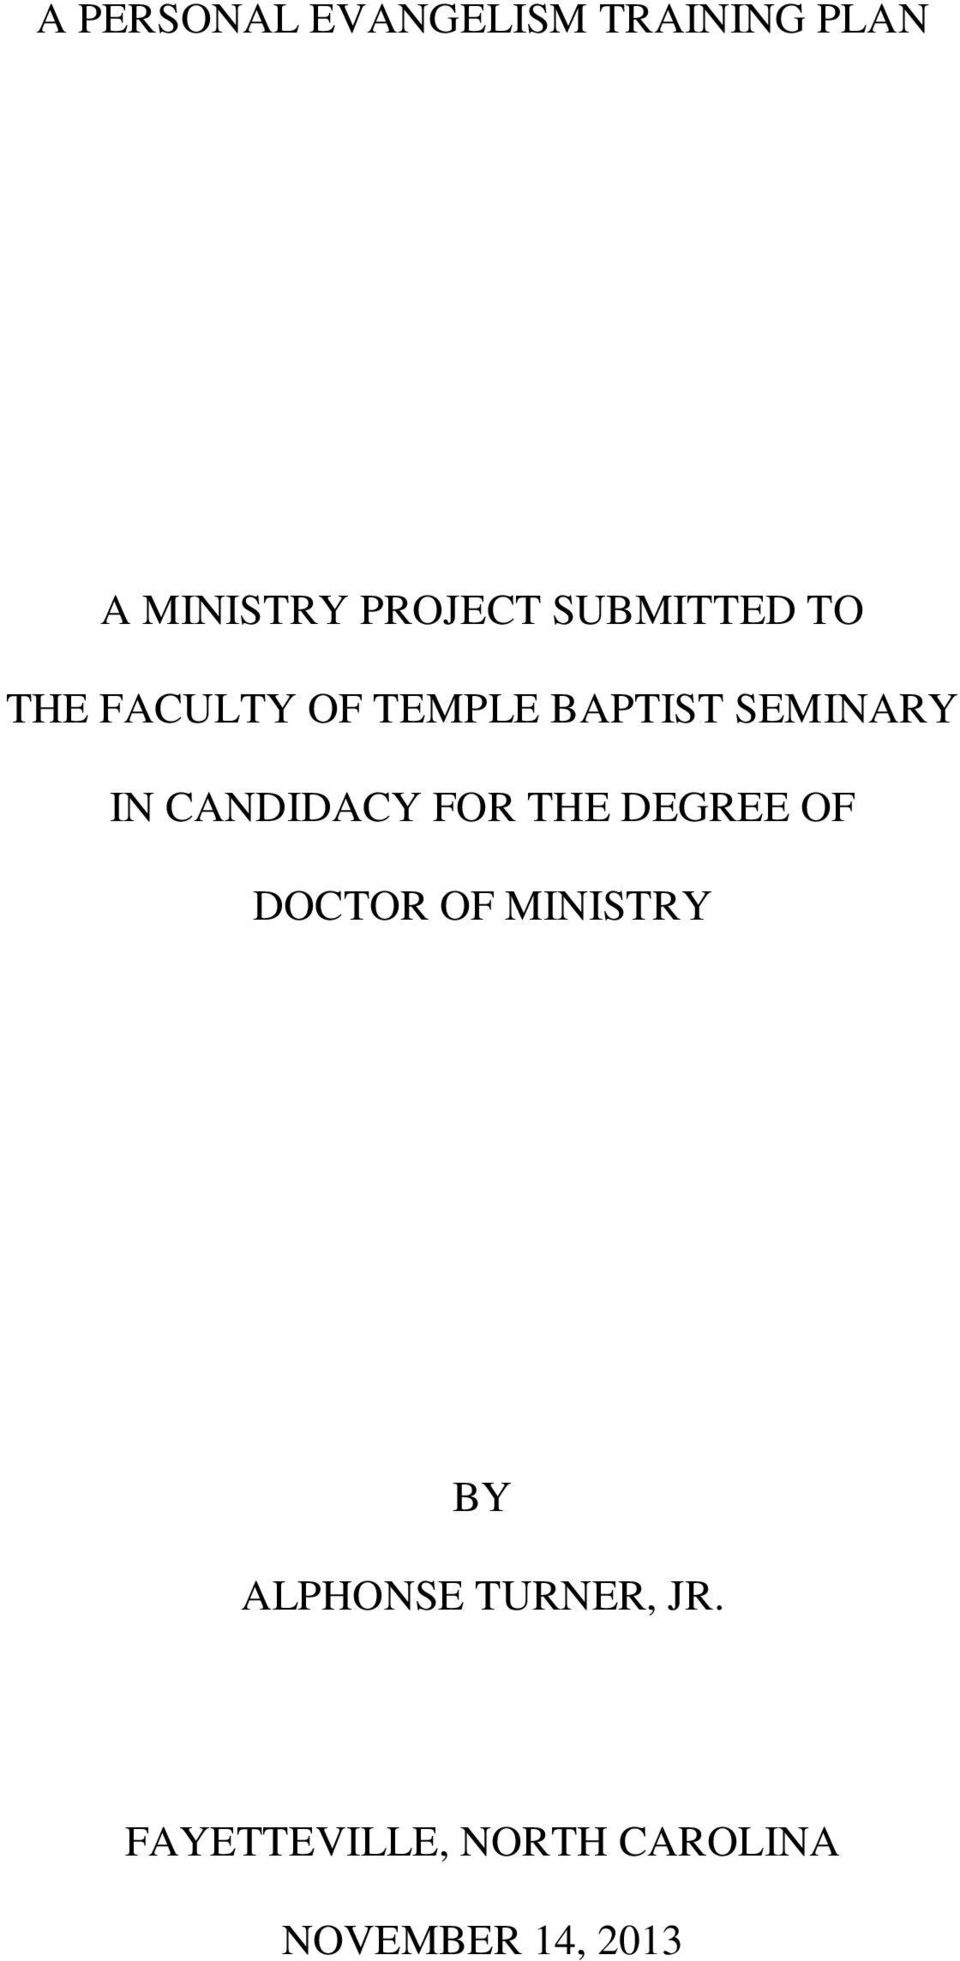 CANDIDACY FOR THE DEGREE OF DOCTOR OF MINISTRY BY